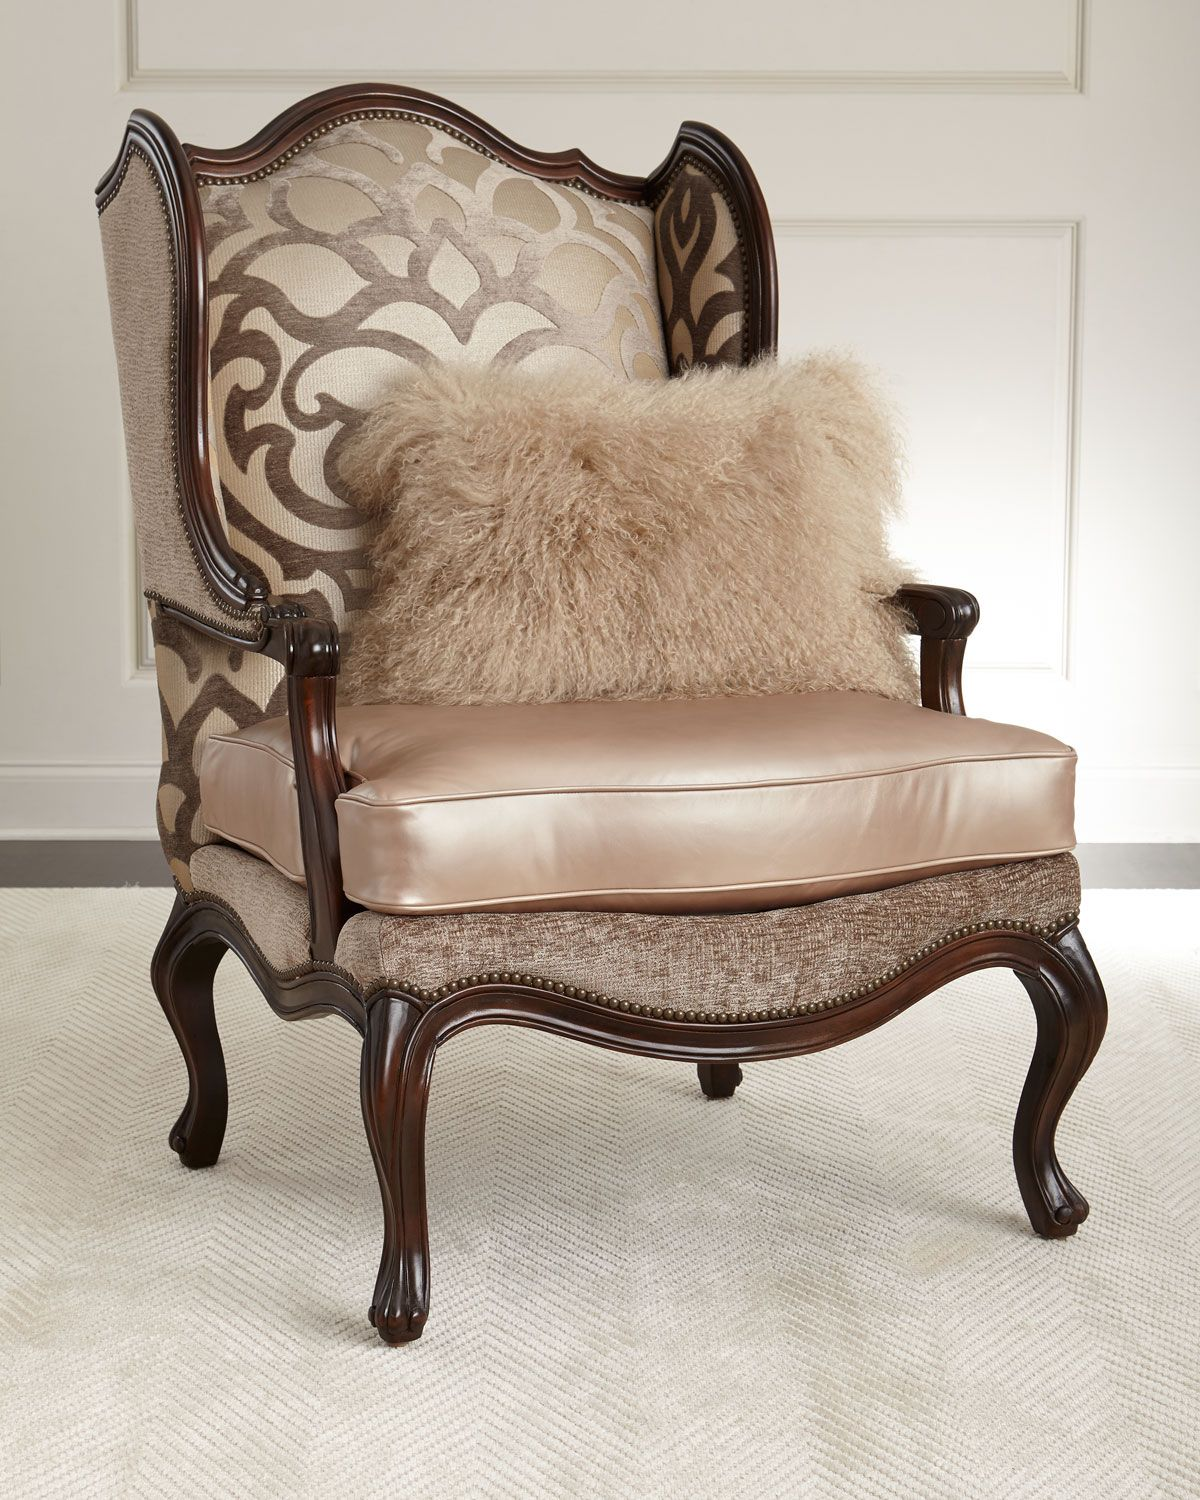 leather bergere chair and ottoman home massage handcrafted wing mahogany frame cotton viscose